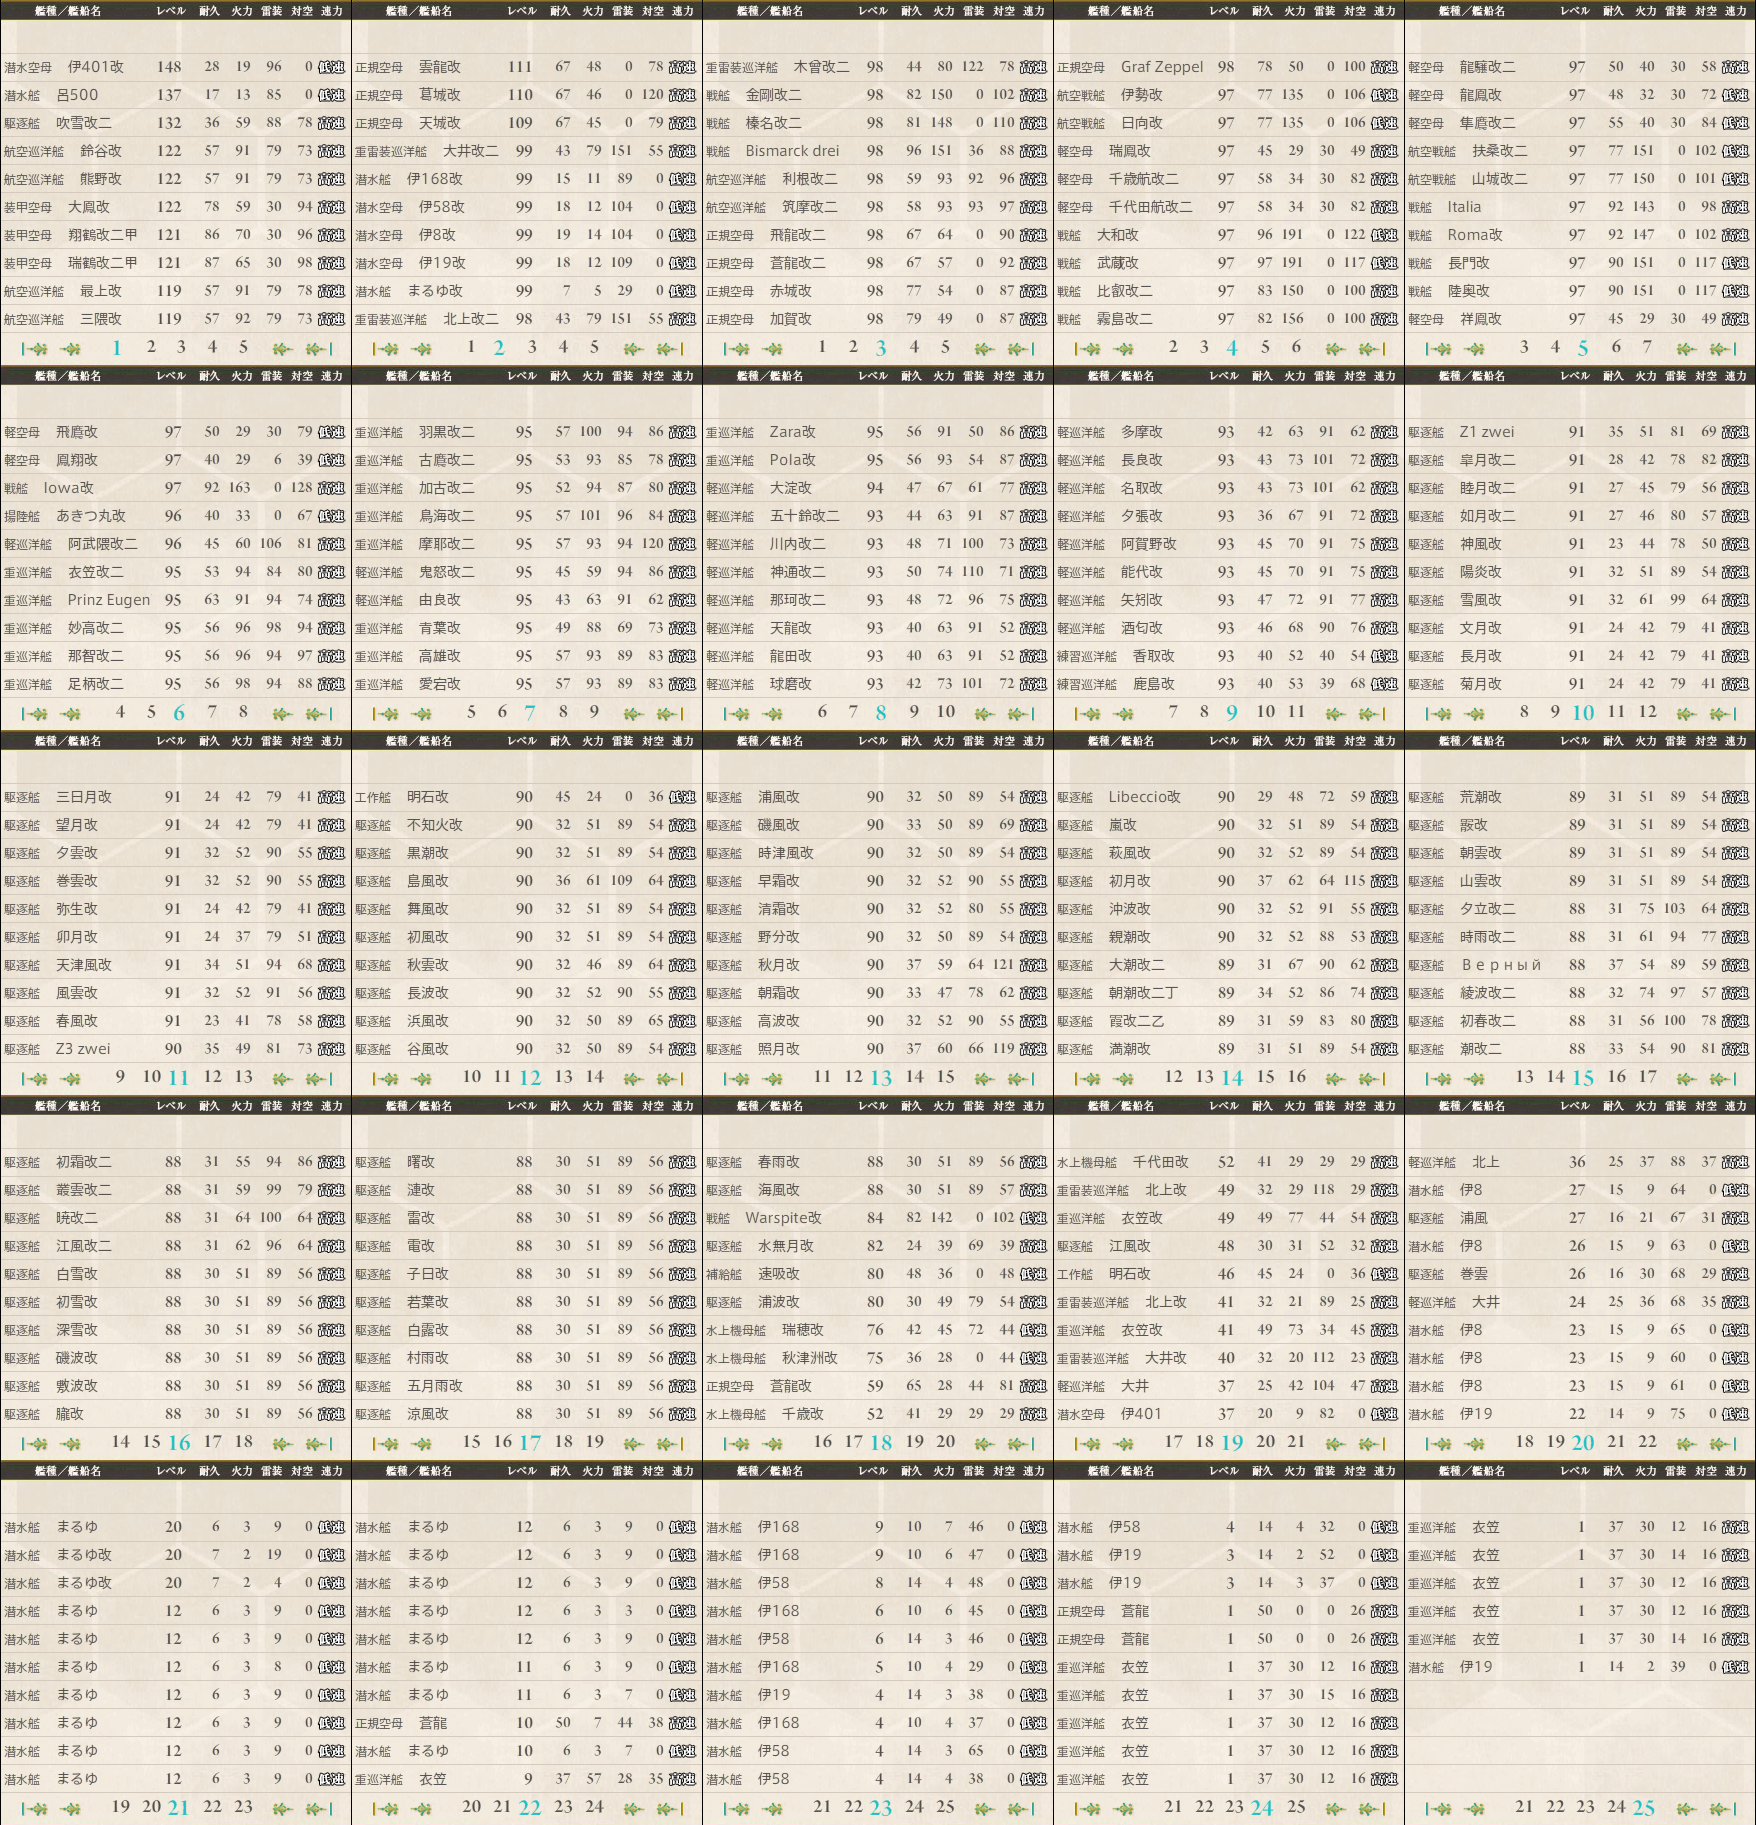 data.kancolle.levelsort.20161120.png